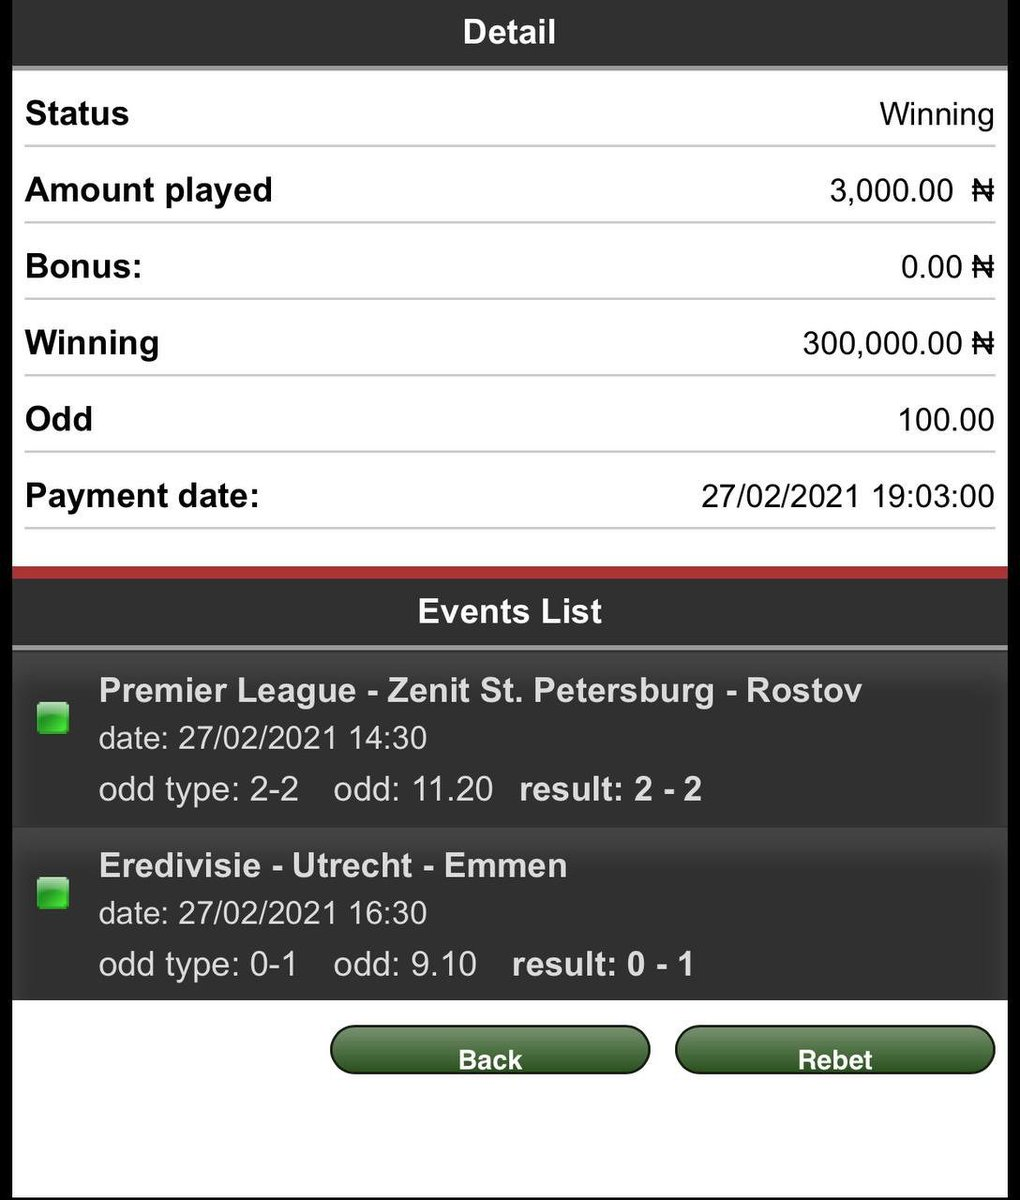 @Green_fixed1 Back to back winning with @Green_fixed1 thanks a lot for yesterday game, am enjoying this your VIP package.  #wednesdaythought #wedomorewednesdays #cryptocurrency #WednesdayMotivation #NBAAllStar #Binance #EricaIsRawGold #COVID19 #79HoursMMPraise #COVID